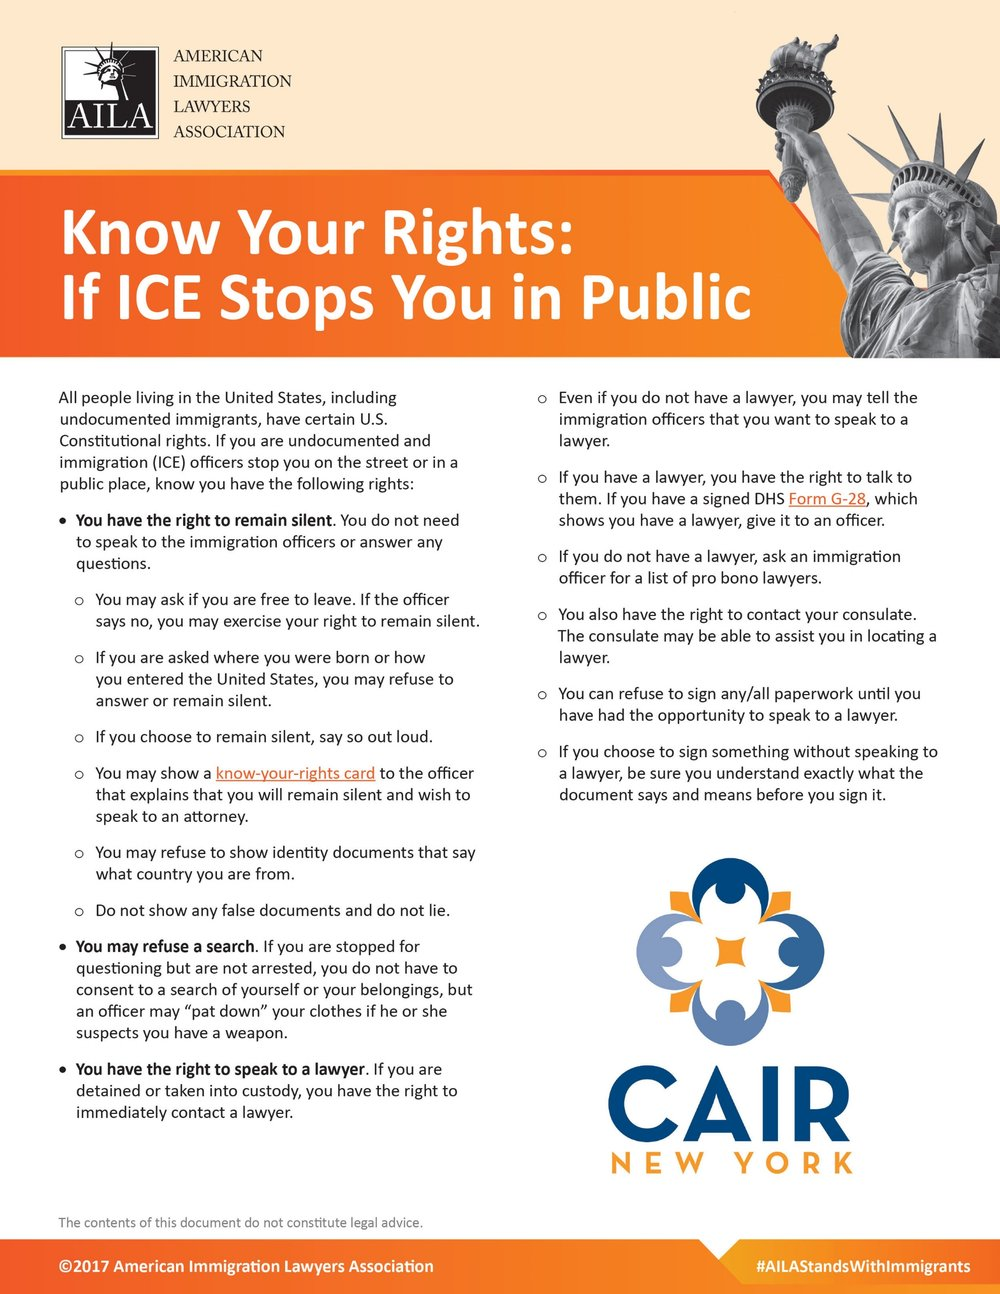 Know Your Rights (English)